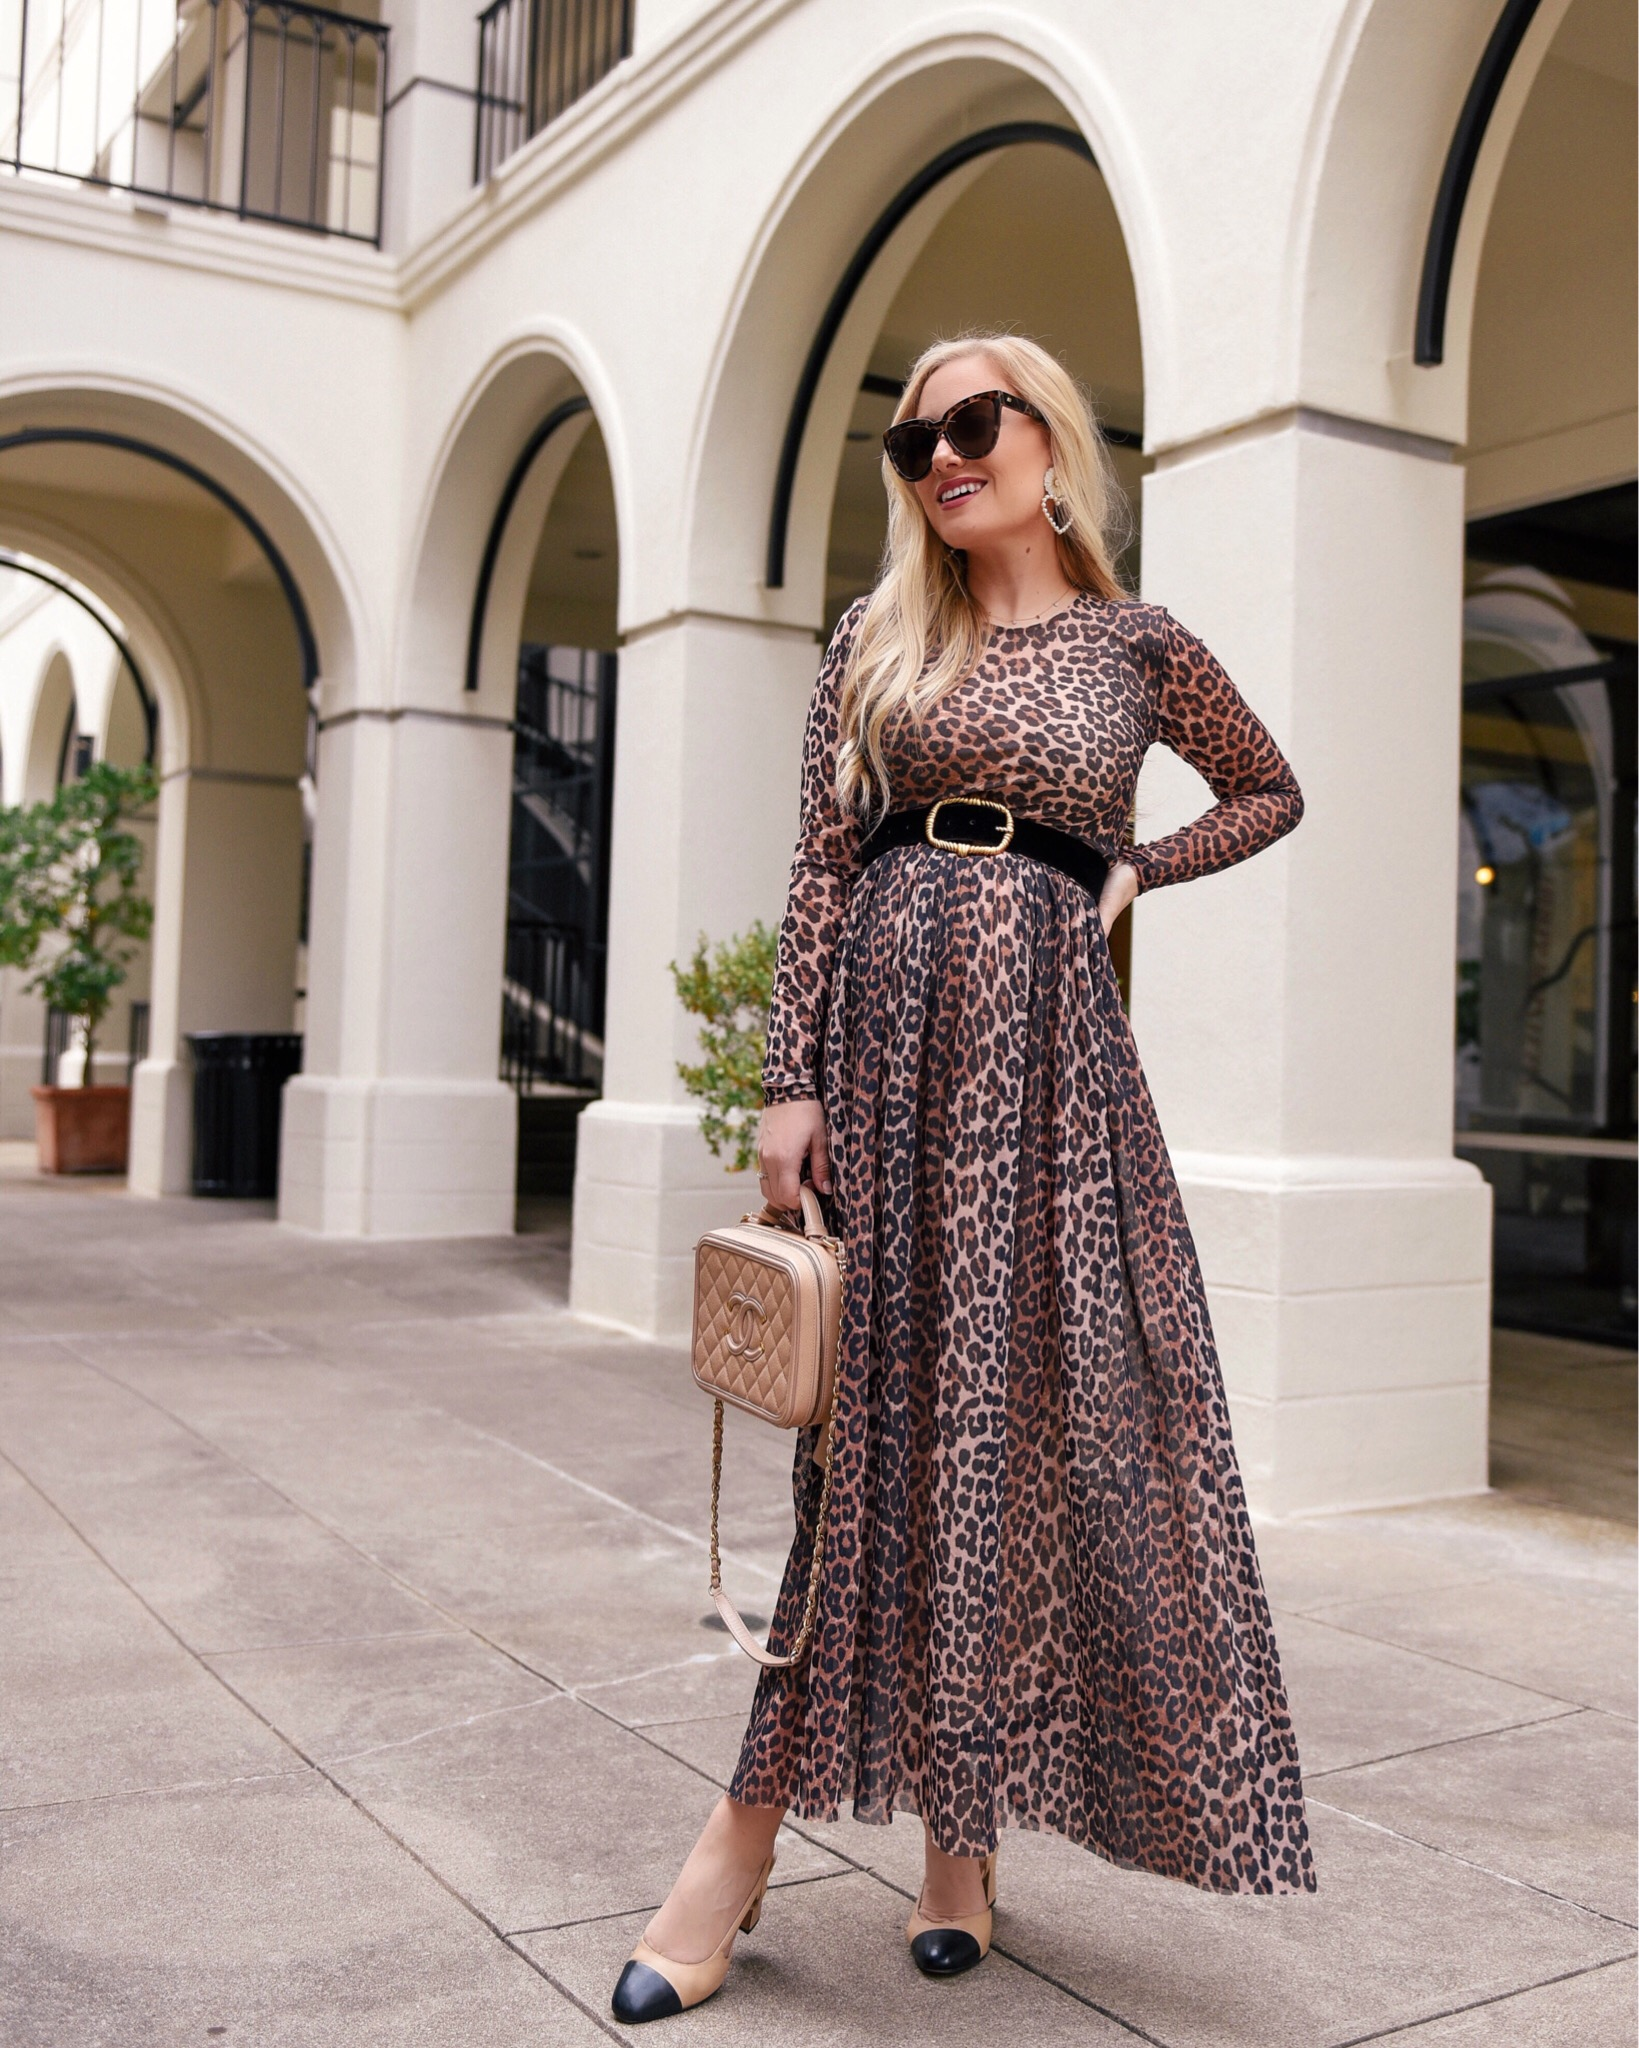 Lo-Murphy-Ganni-Leopard-Dress-Shopbop-Chanel-Slides-Sam-Edleman-sandals-Chanel-Handbag-Leopard-Dress-Leopard-Maxi-Dress